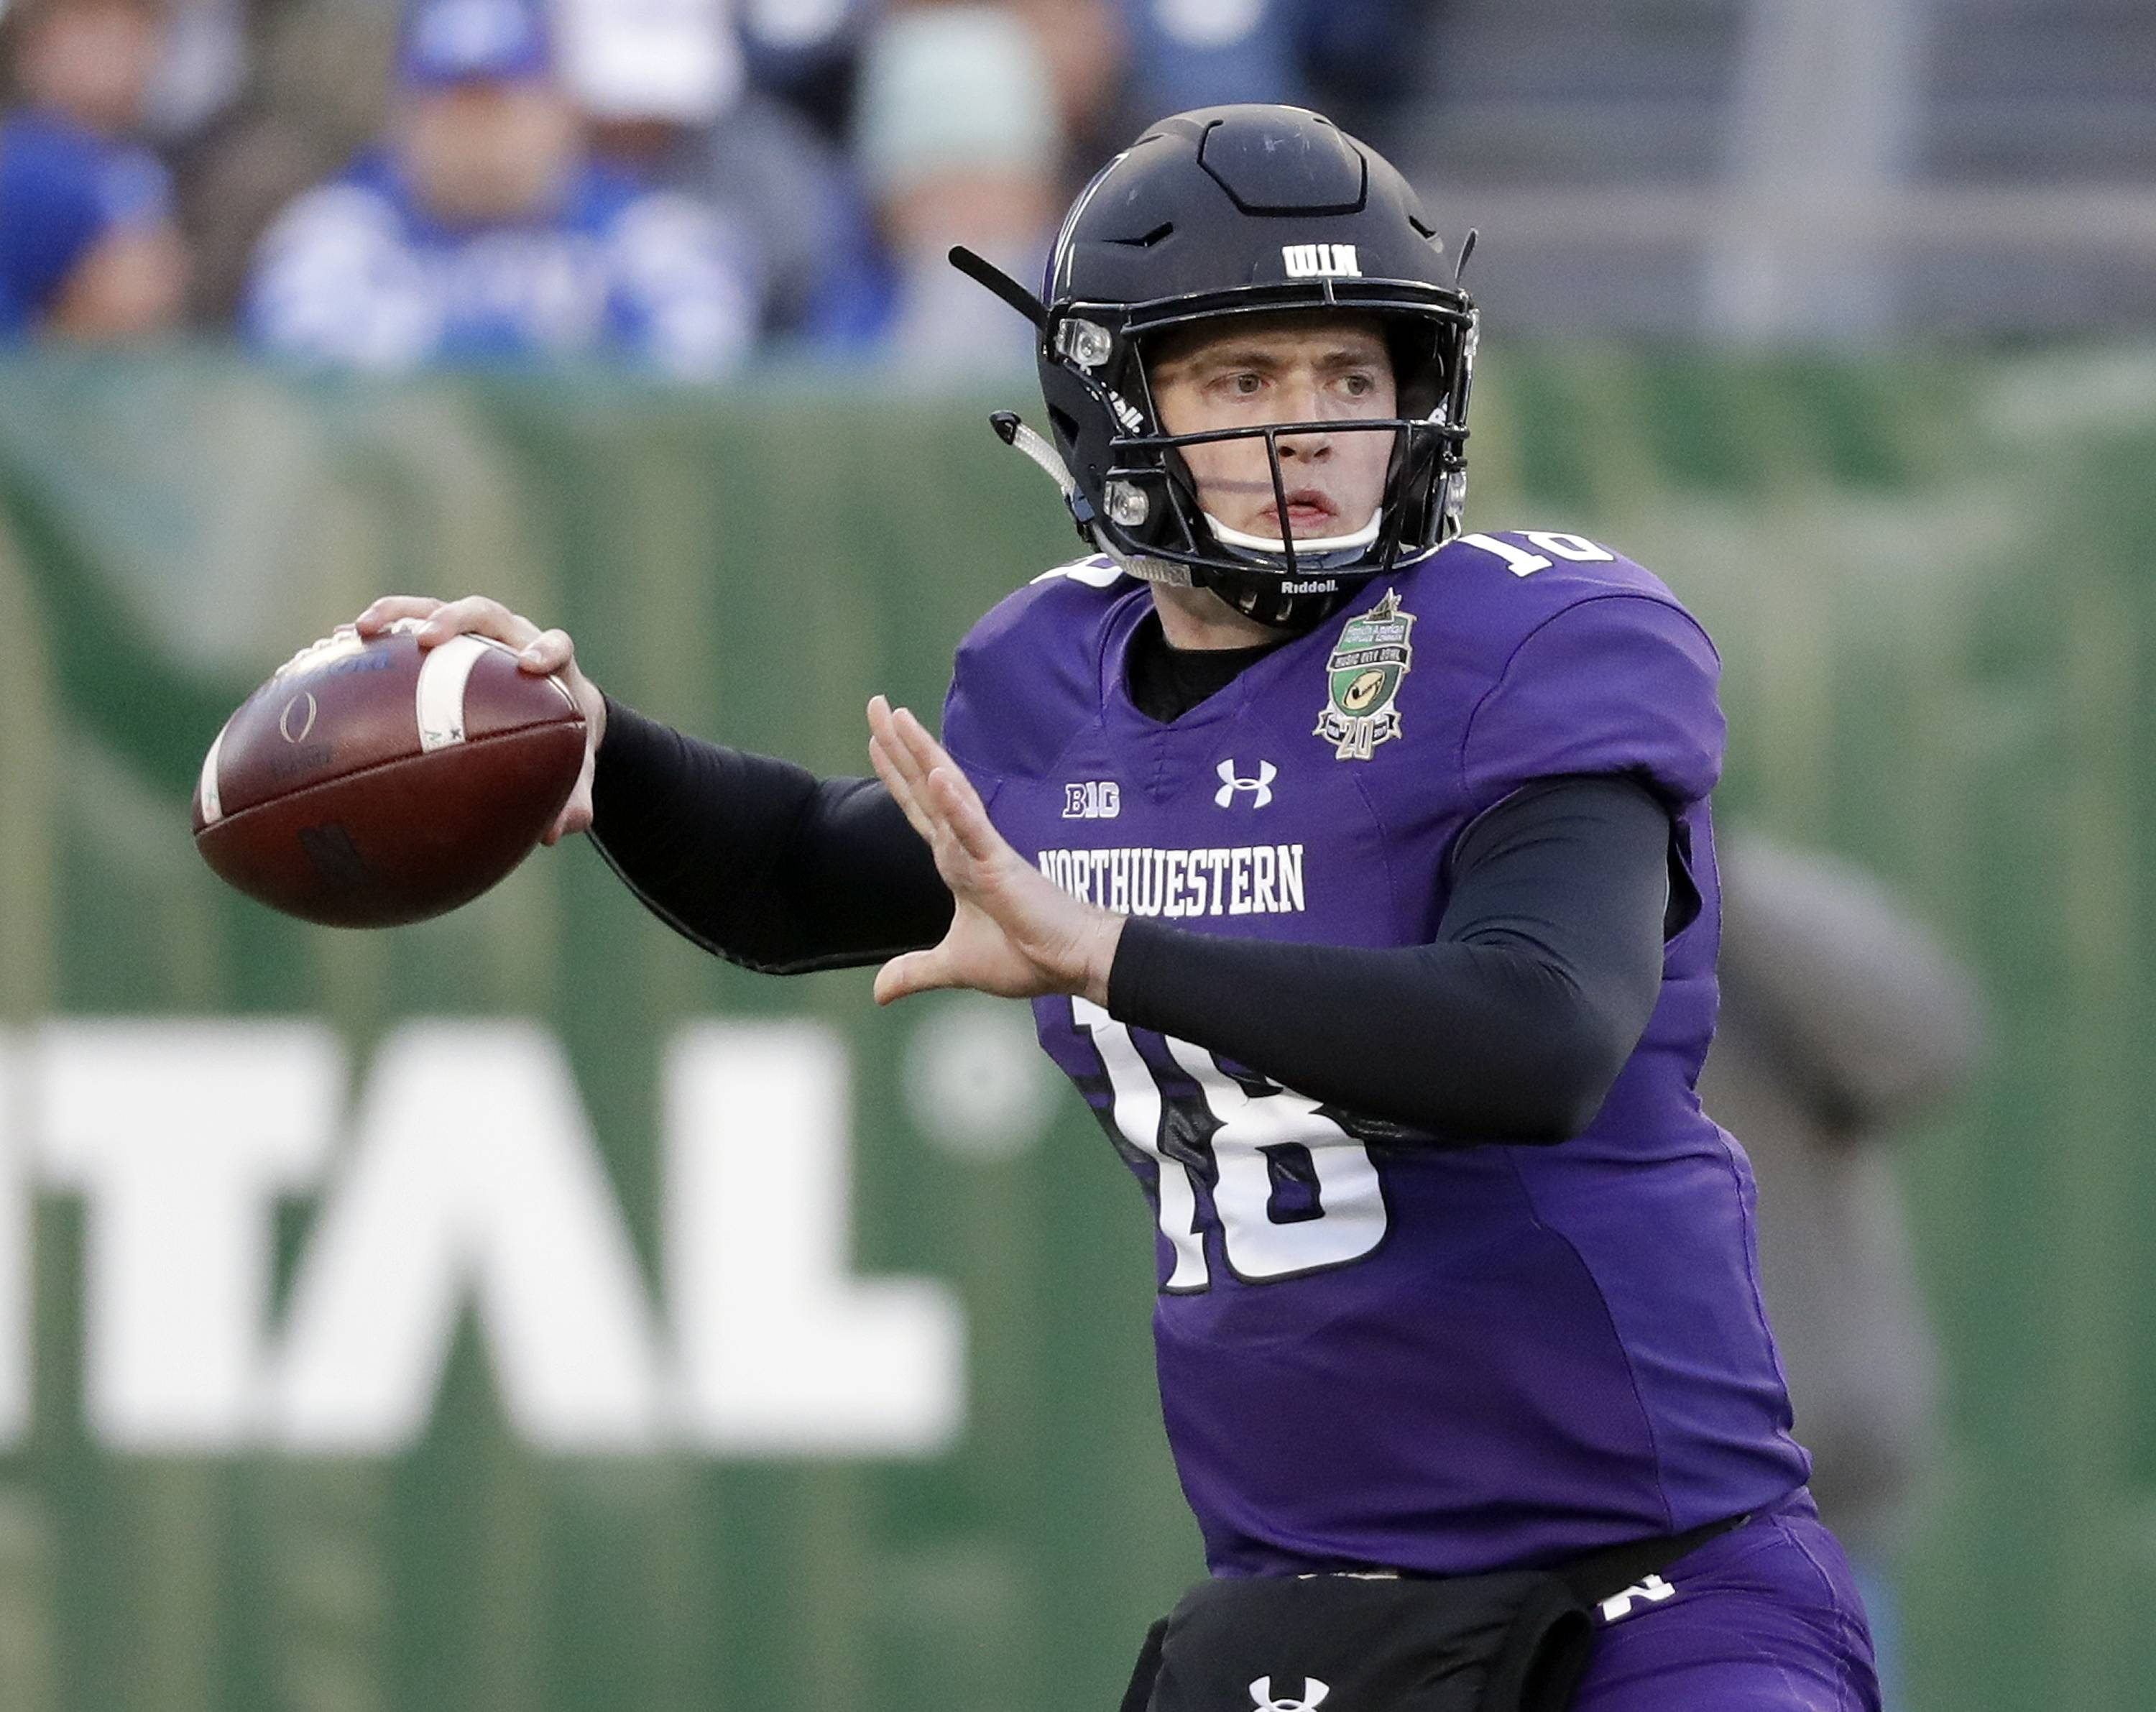 With quarterback Clayton Thorson coming back from knee surgery, can the Northwestern Wildcats take a step forward in the Big Ten West Division? (AP Photo/Mark Humphrey)